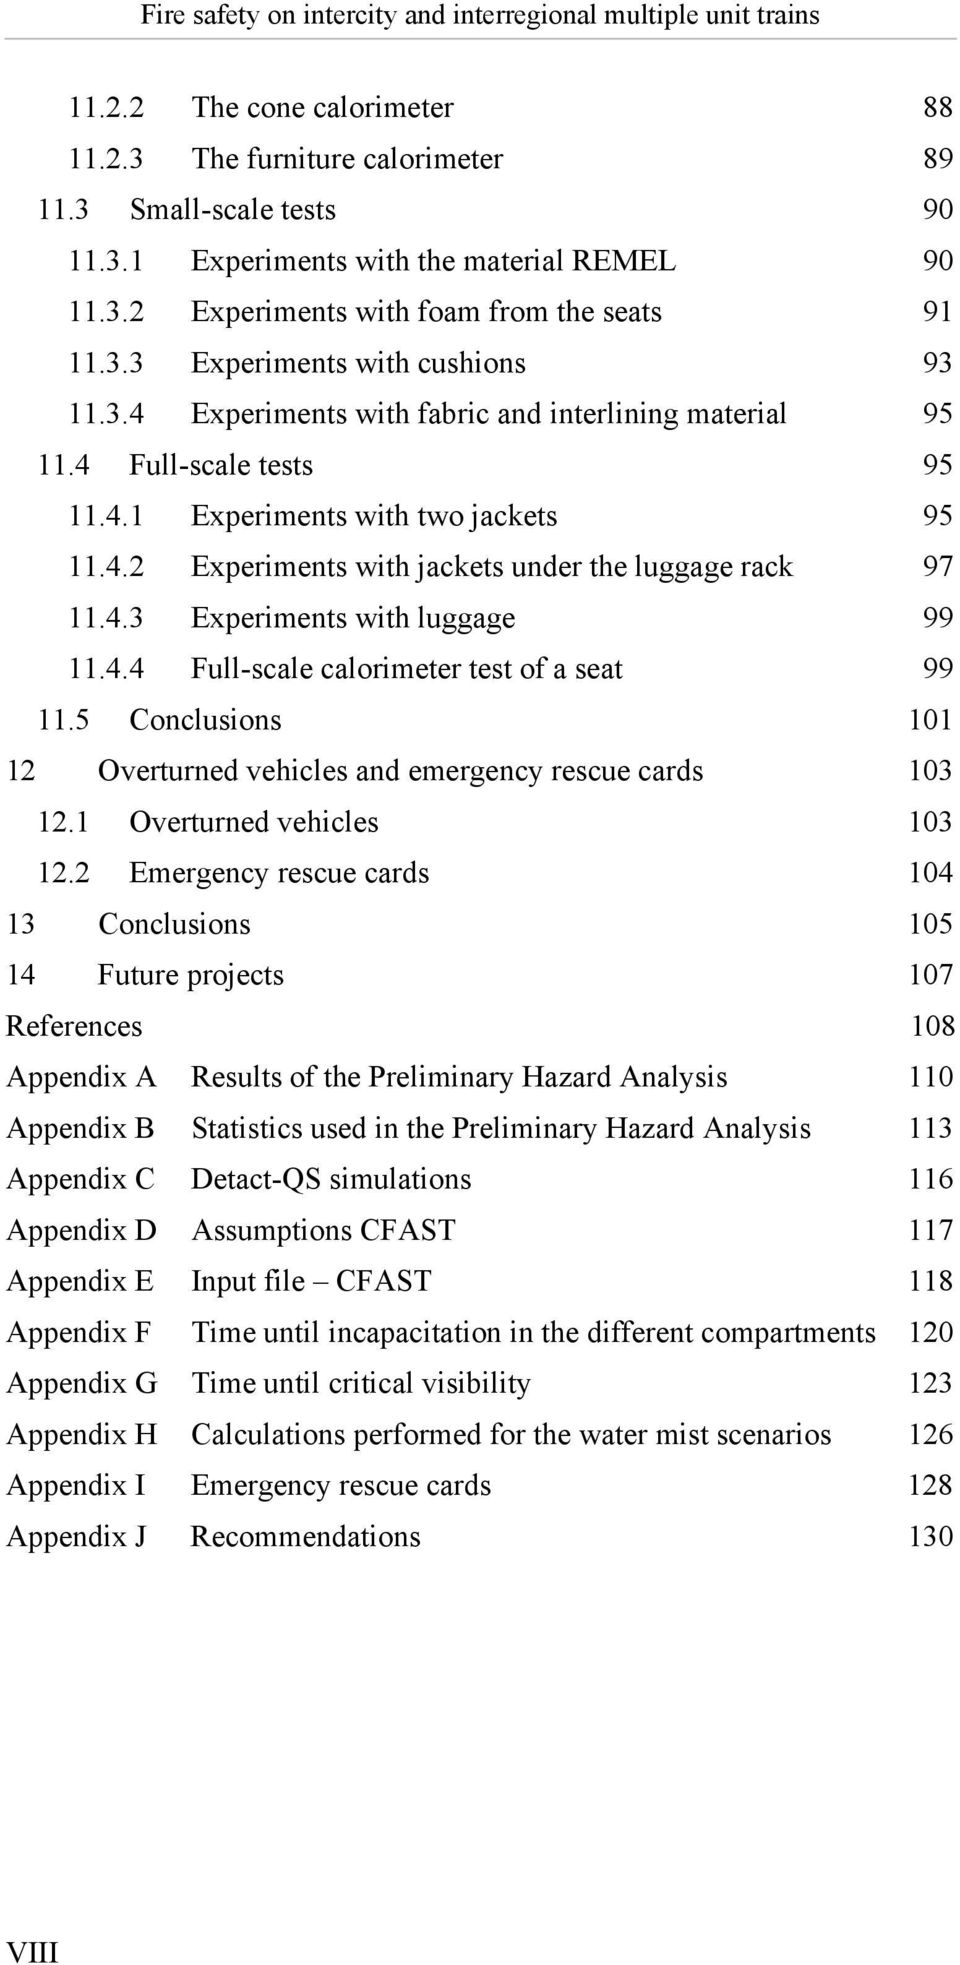 4.4 Full-scale calorimeter test of a seat 99 11.5 Conclusions 101 12 Overturned vehicles and emergency rescue cards 103 12.1 Overturned vehicles 103 12.